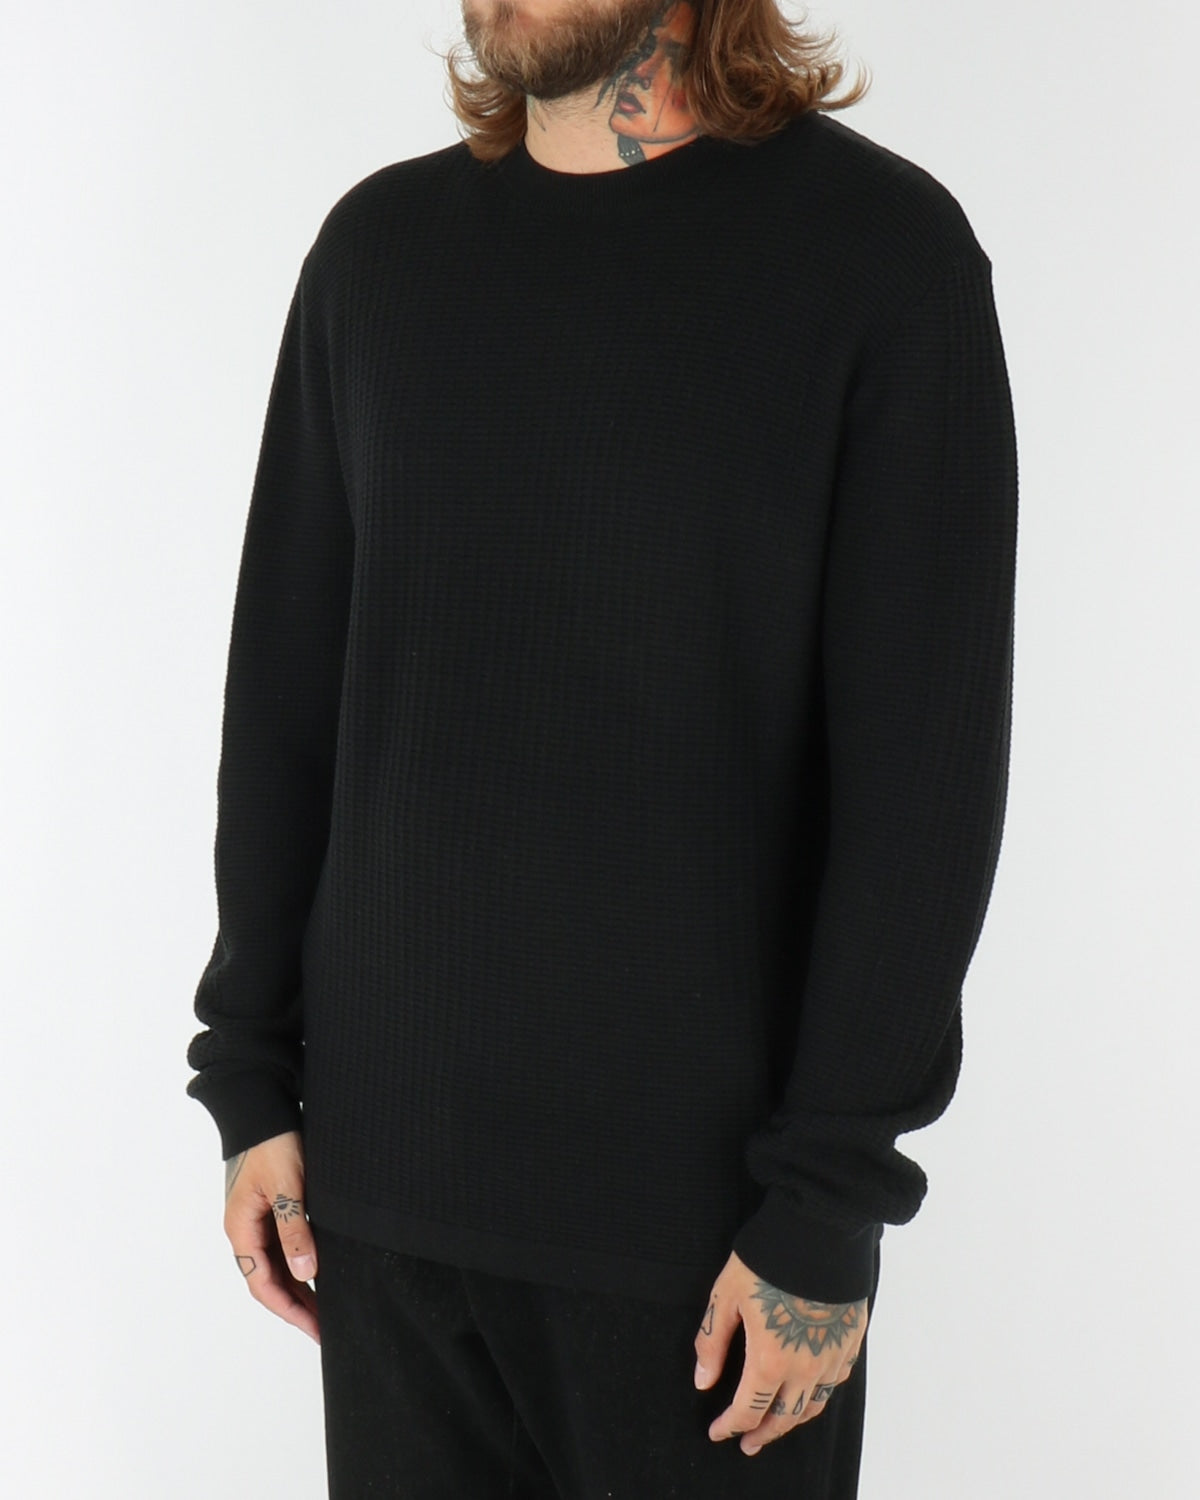 journal clothing_sins knit_black_view_1_3